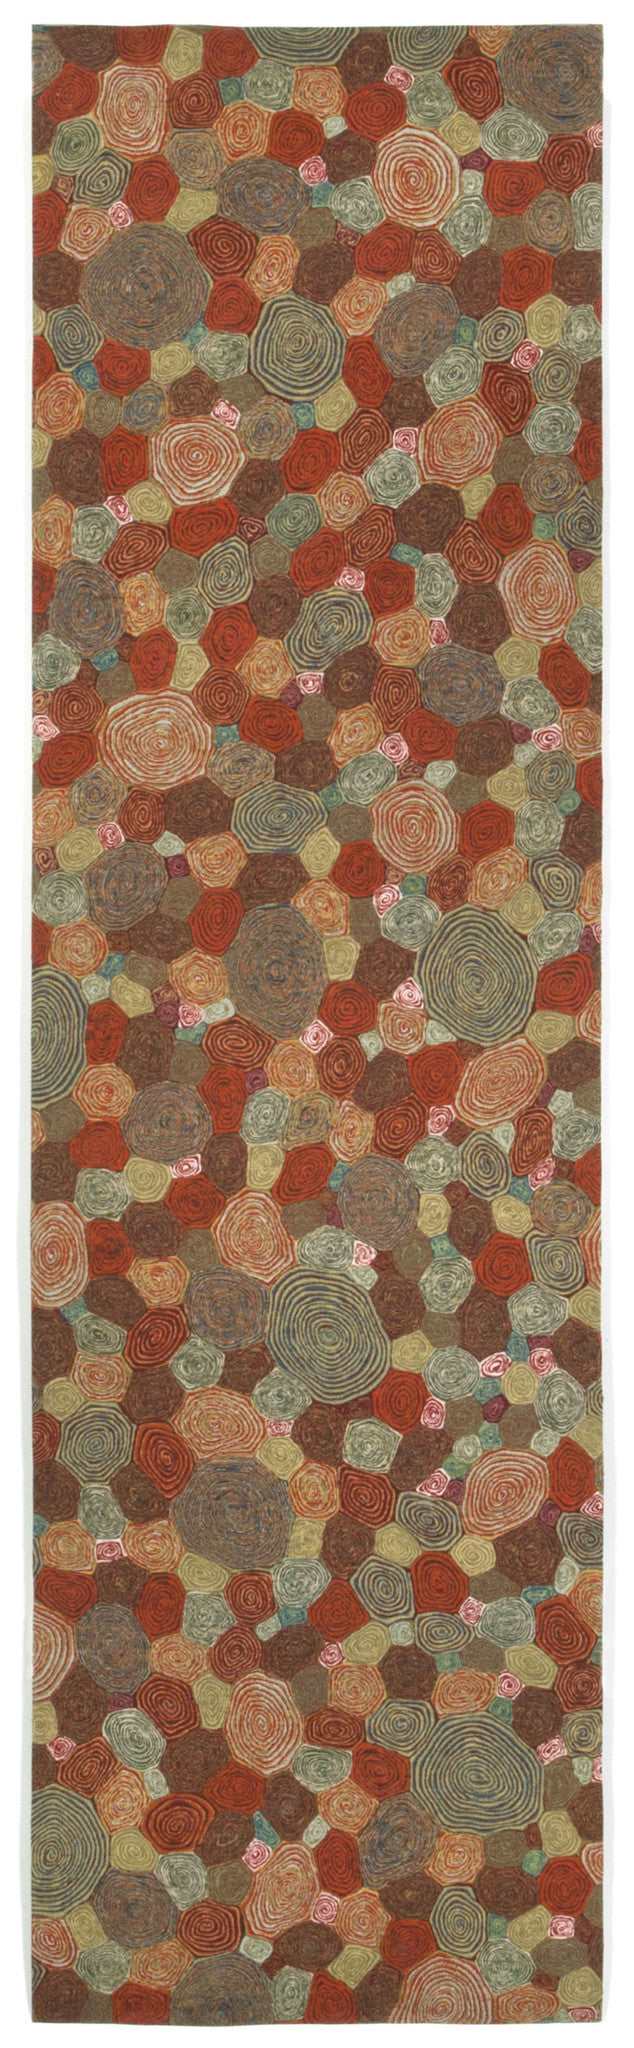 "Giant Swirls Fiesta 27"" x 8' Indoor/Outdoor Flatweave Rug"